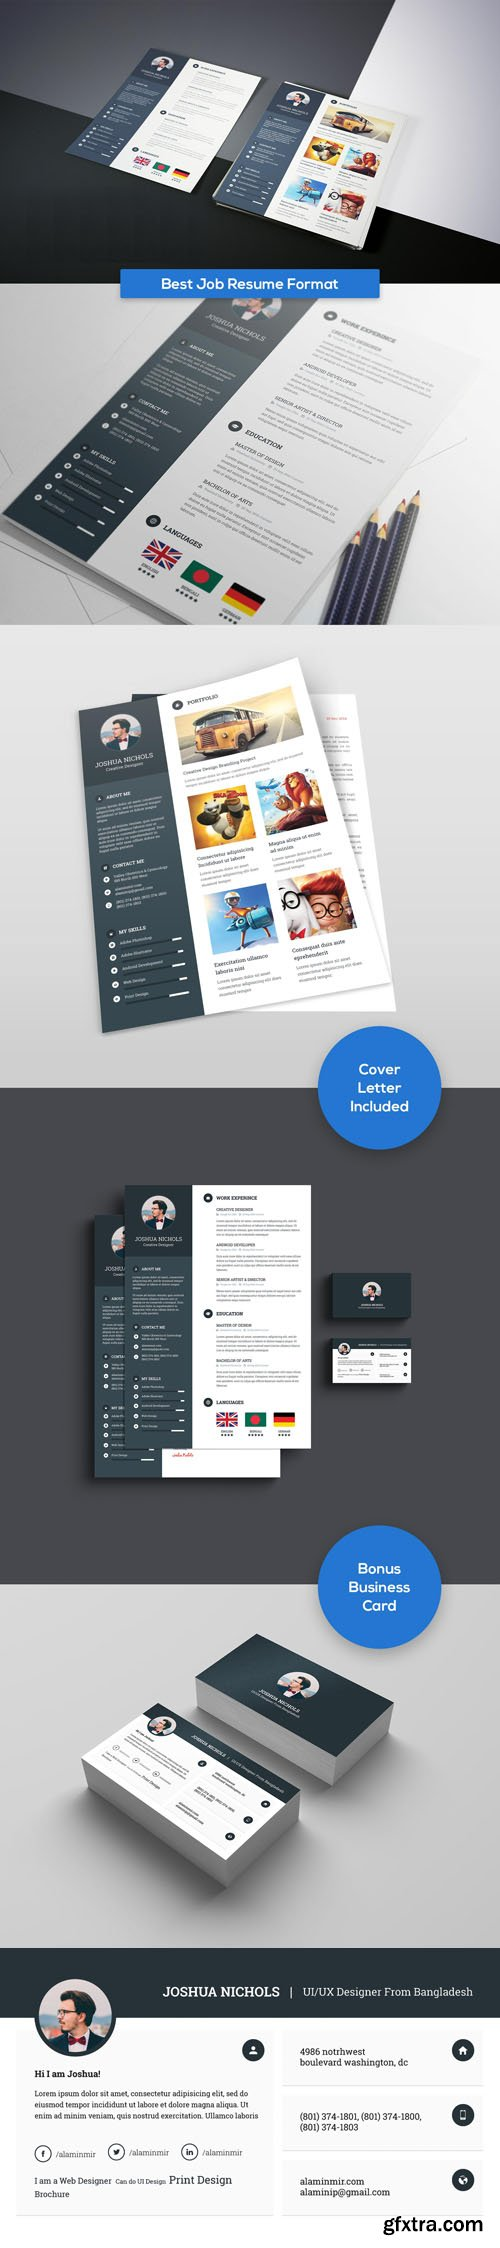 Best job resume format psd templates with business card gfxtra best job resume format psd templates with business card reheart Images